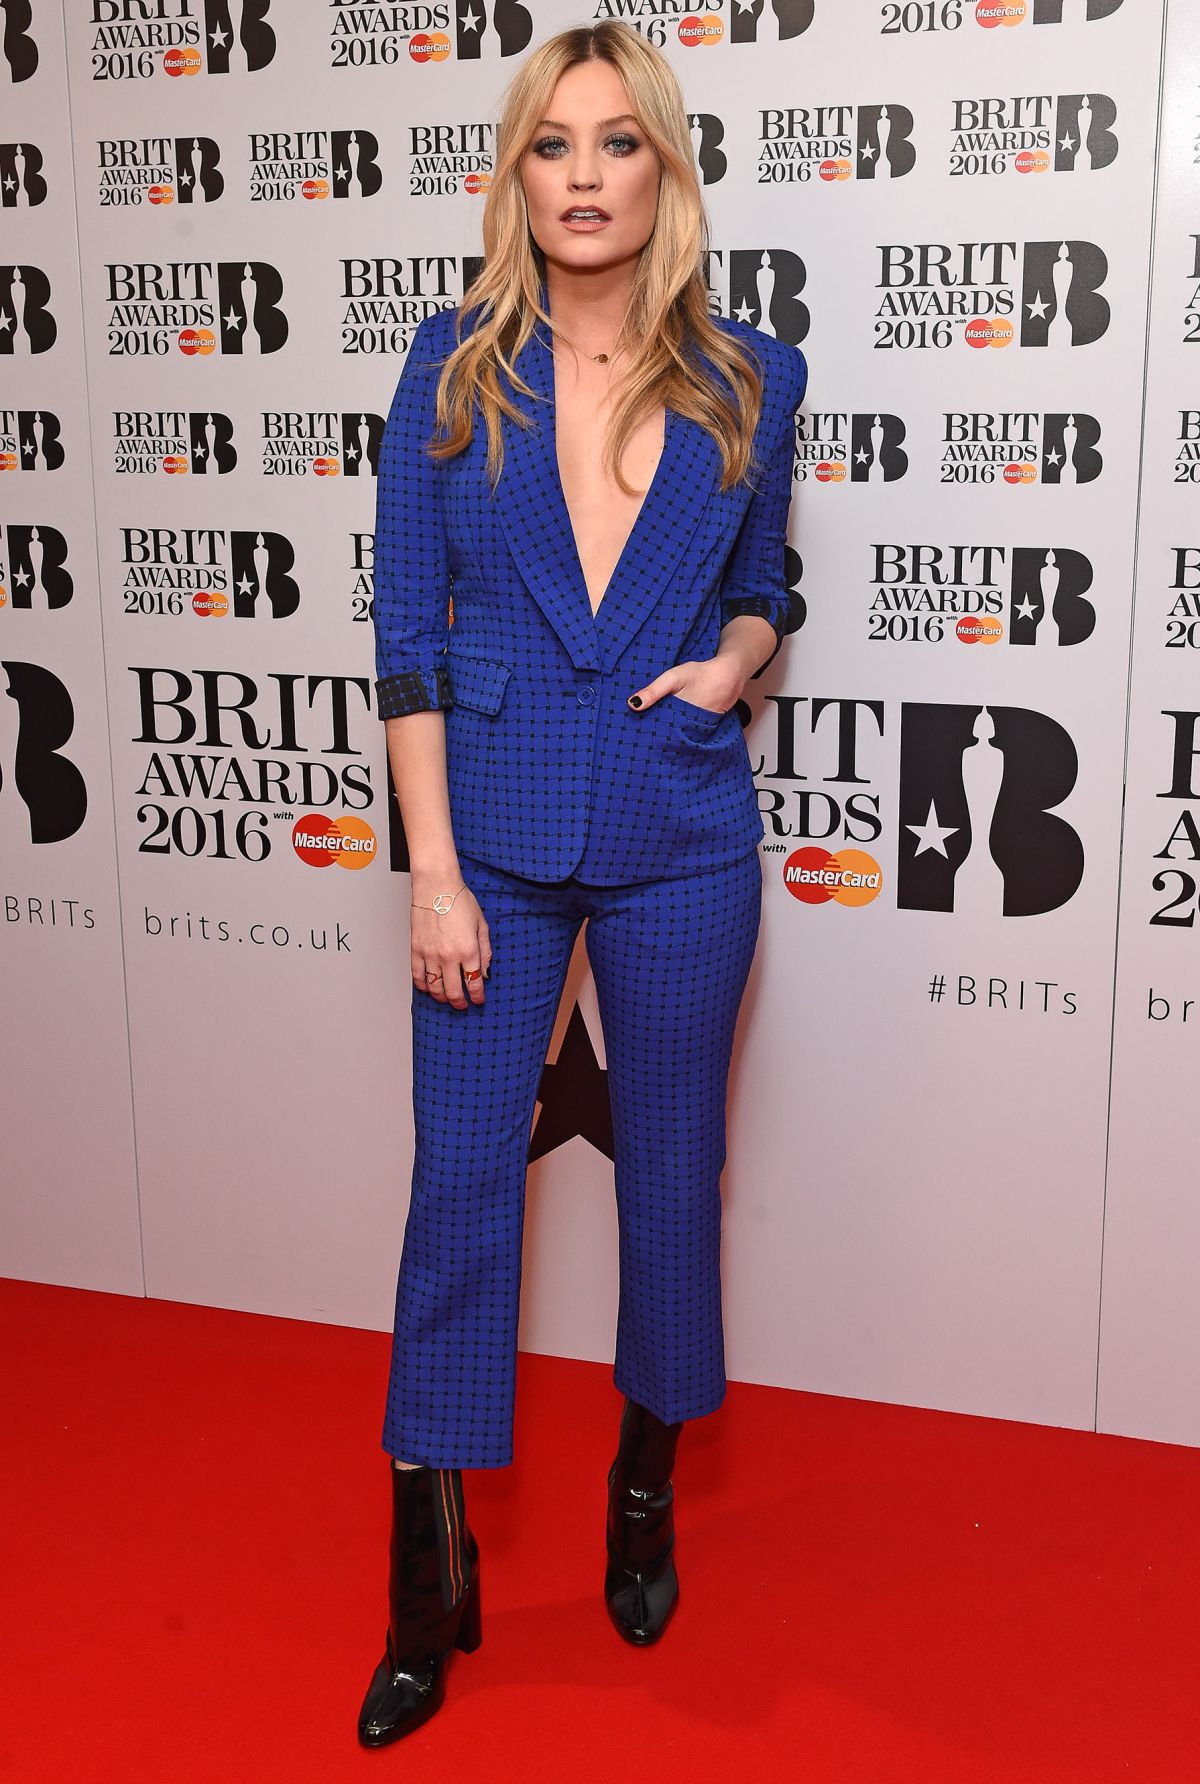 laura whitmore wiki